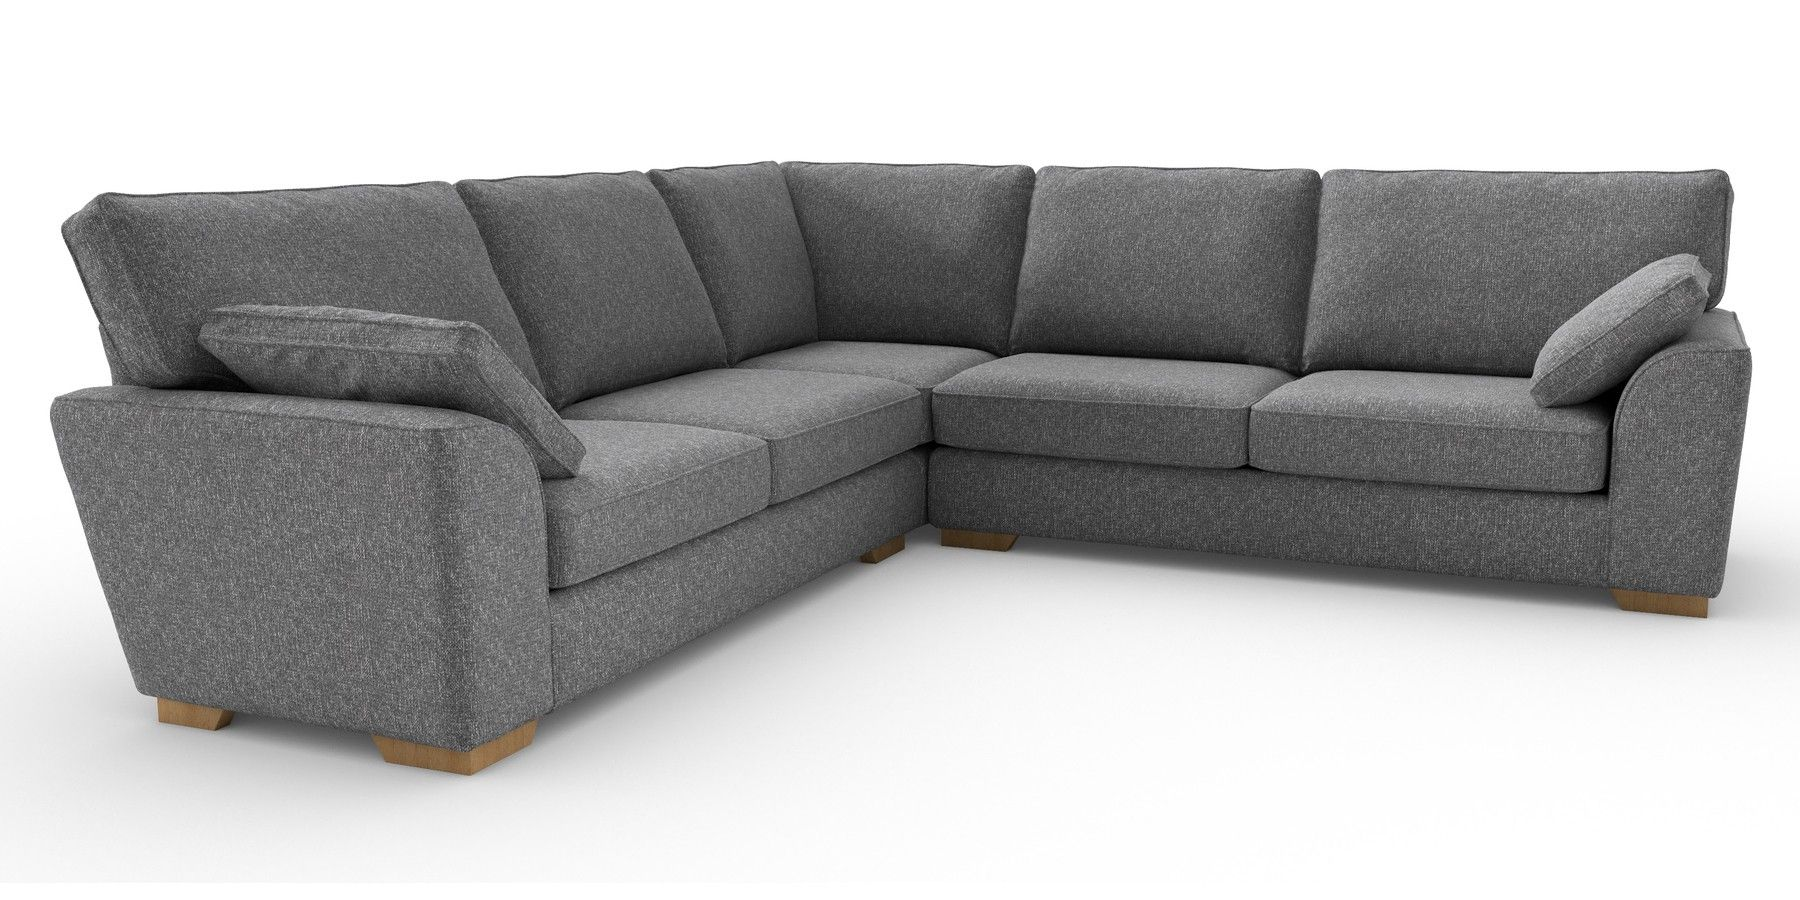 Buy Stamford Universal Corner Sofa (5 Seats) Tweedy Blend ...